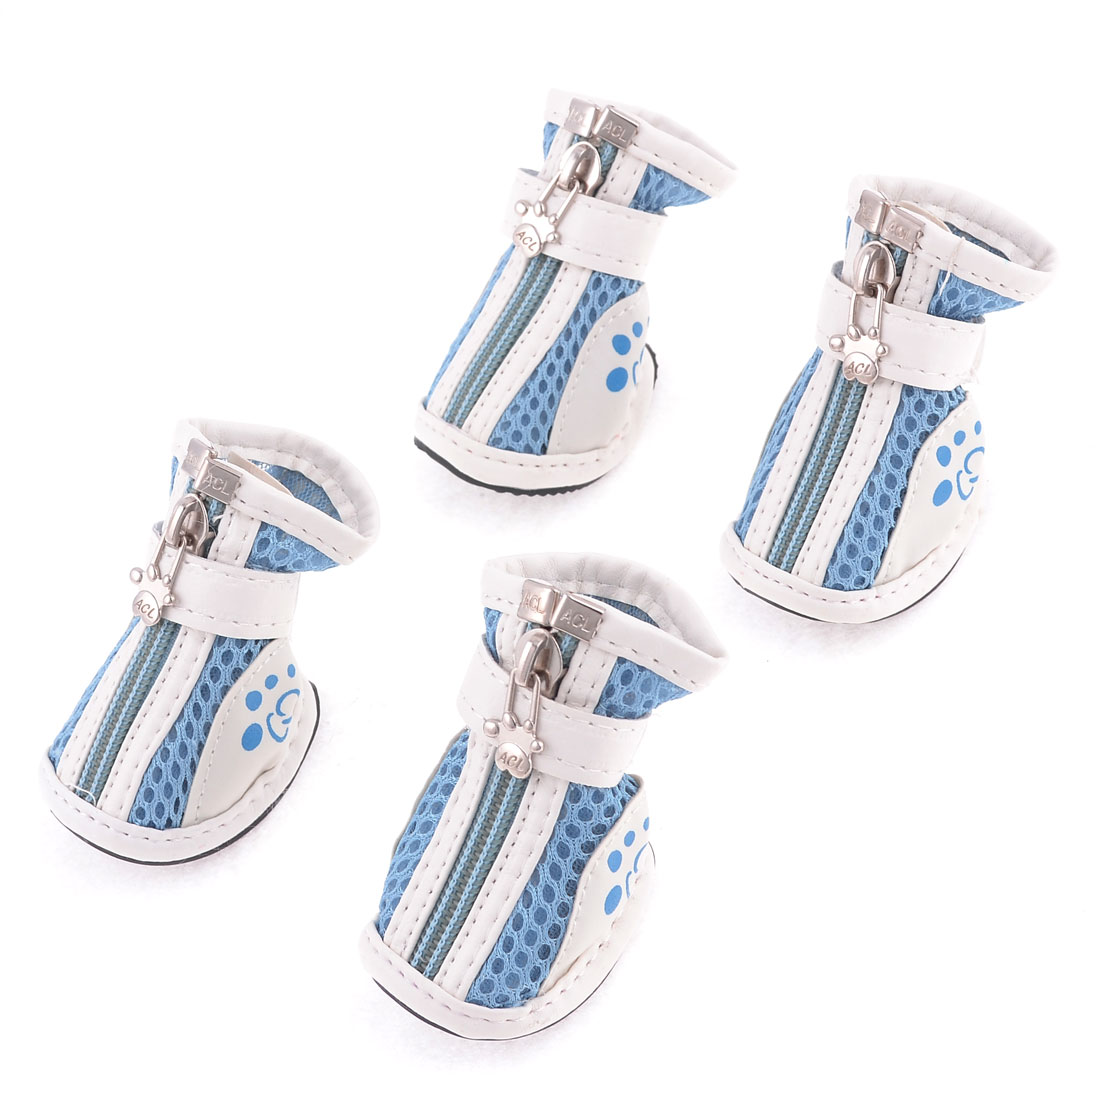 Pet Doggy Yorkie Chihuaha Zipper Closure White Blue Meshy Shoes 2 Pair XXS